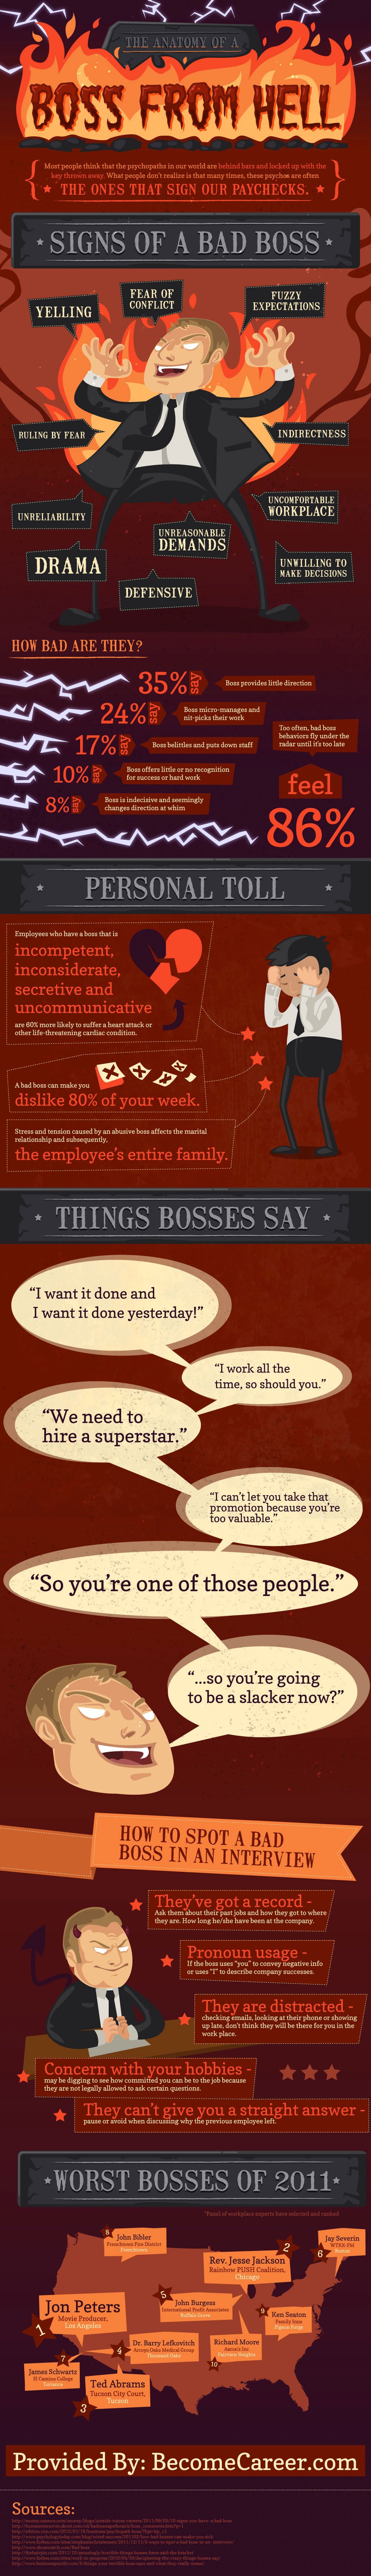 Boss-From-Hell-infographic